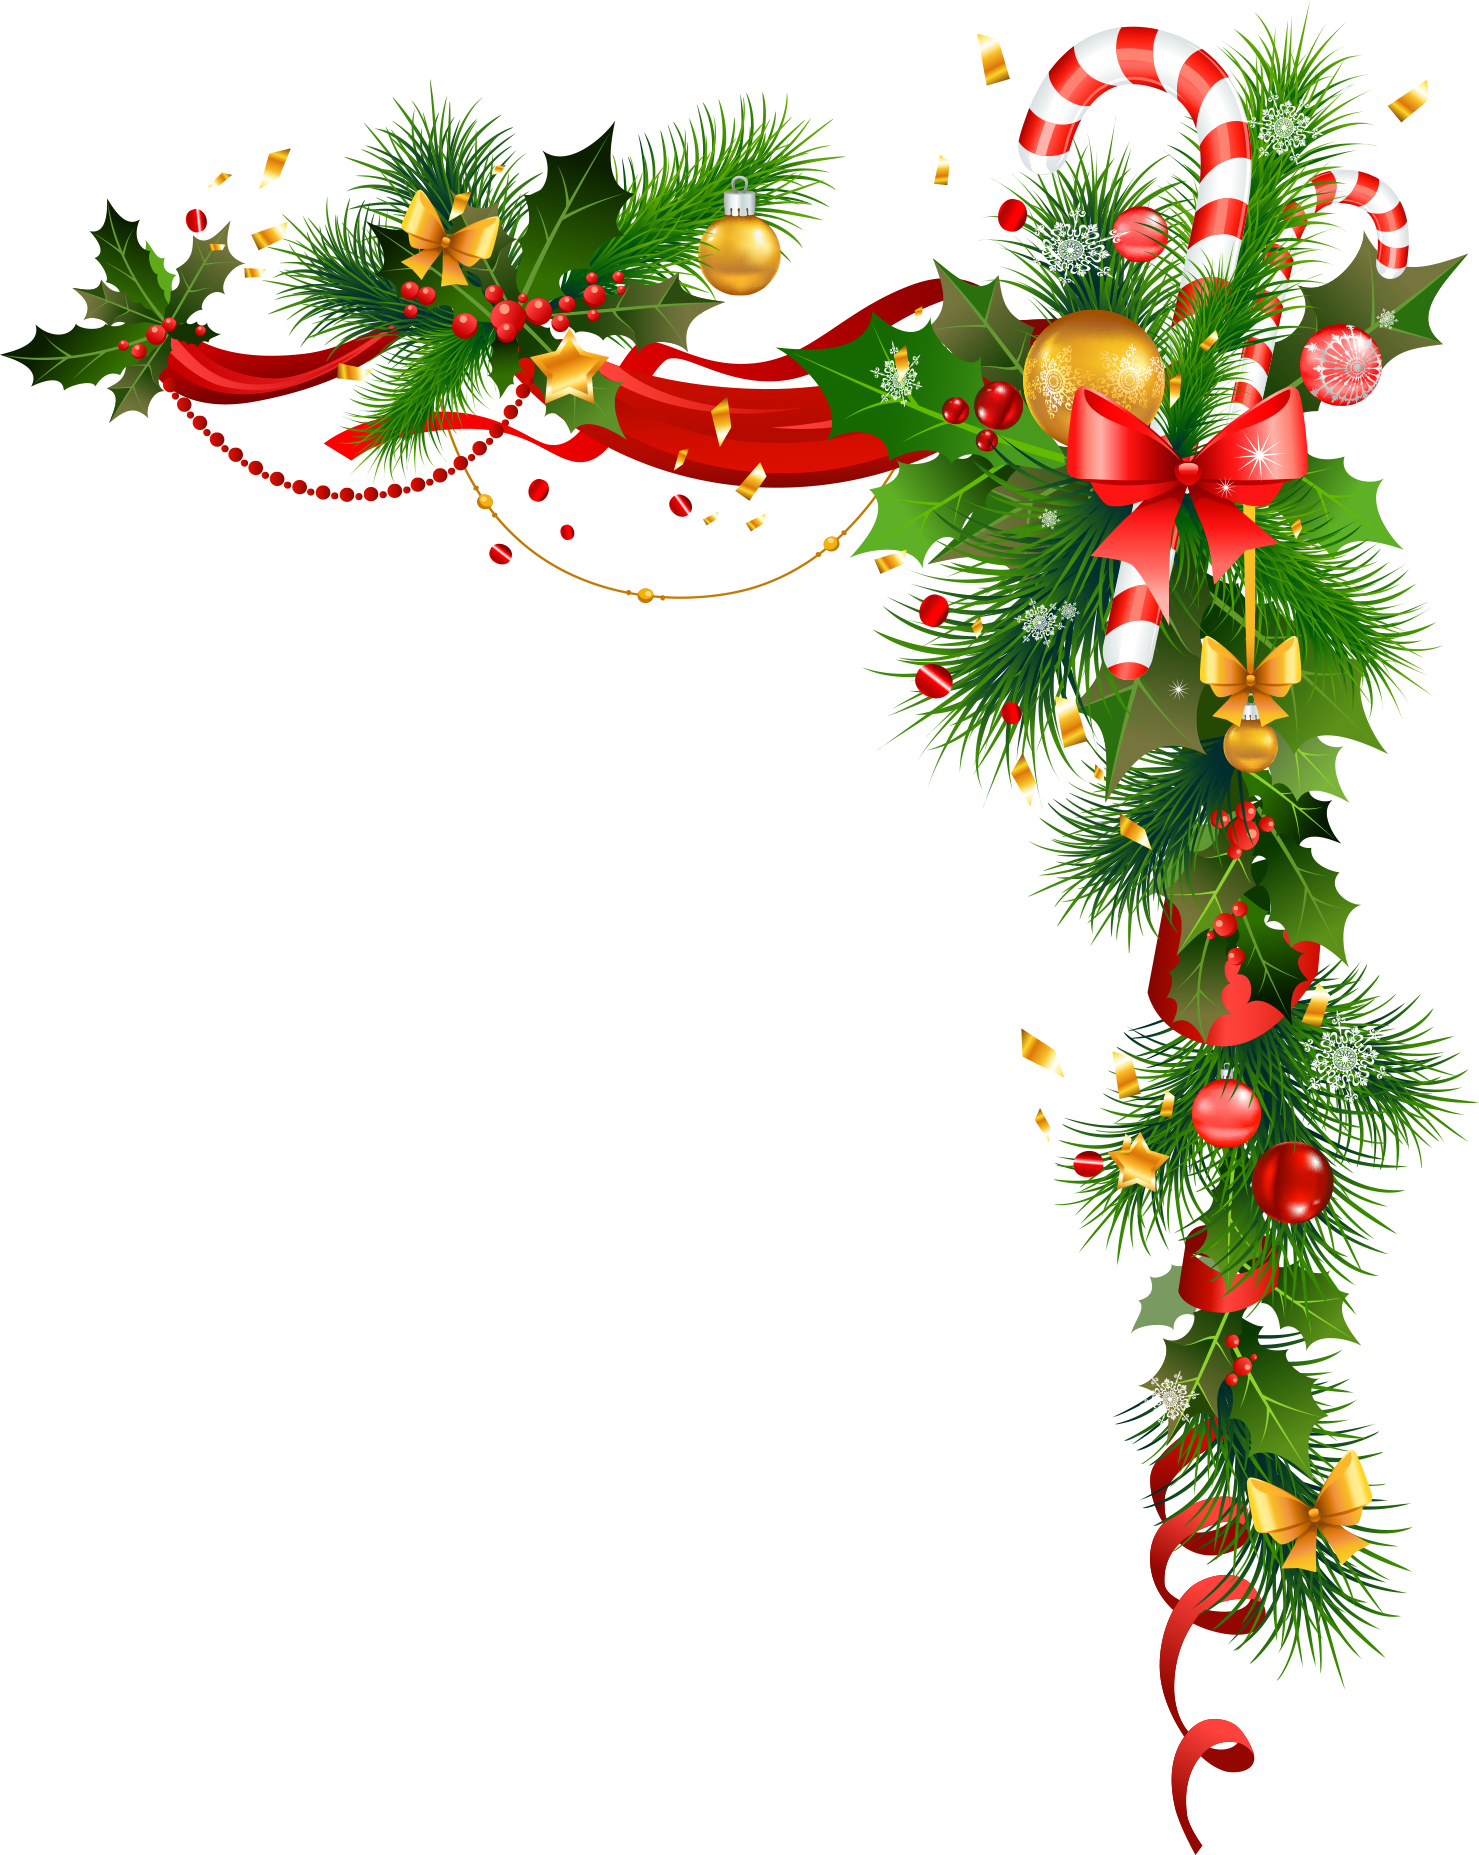 Christmas Decorations PNG Background.